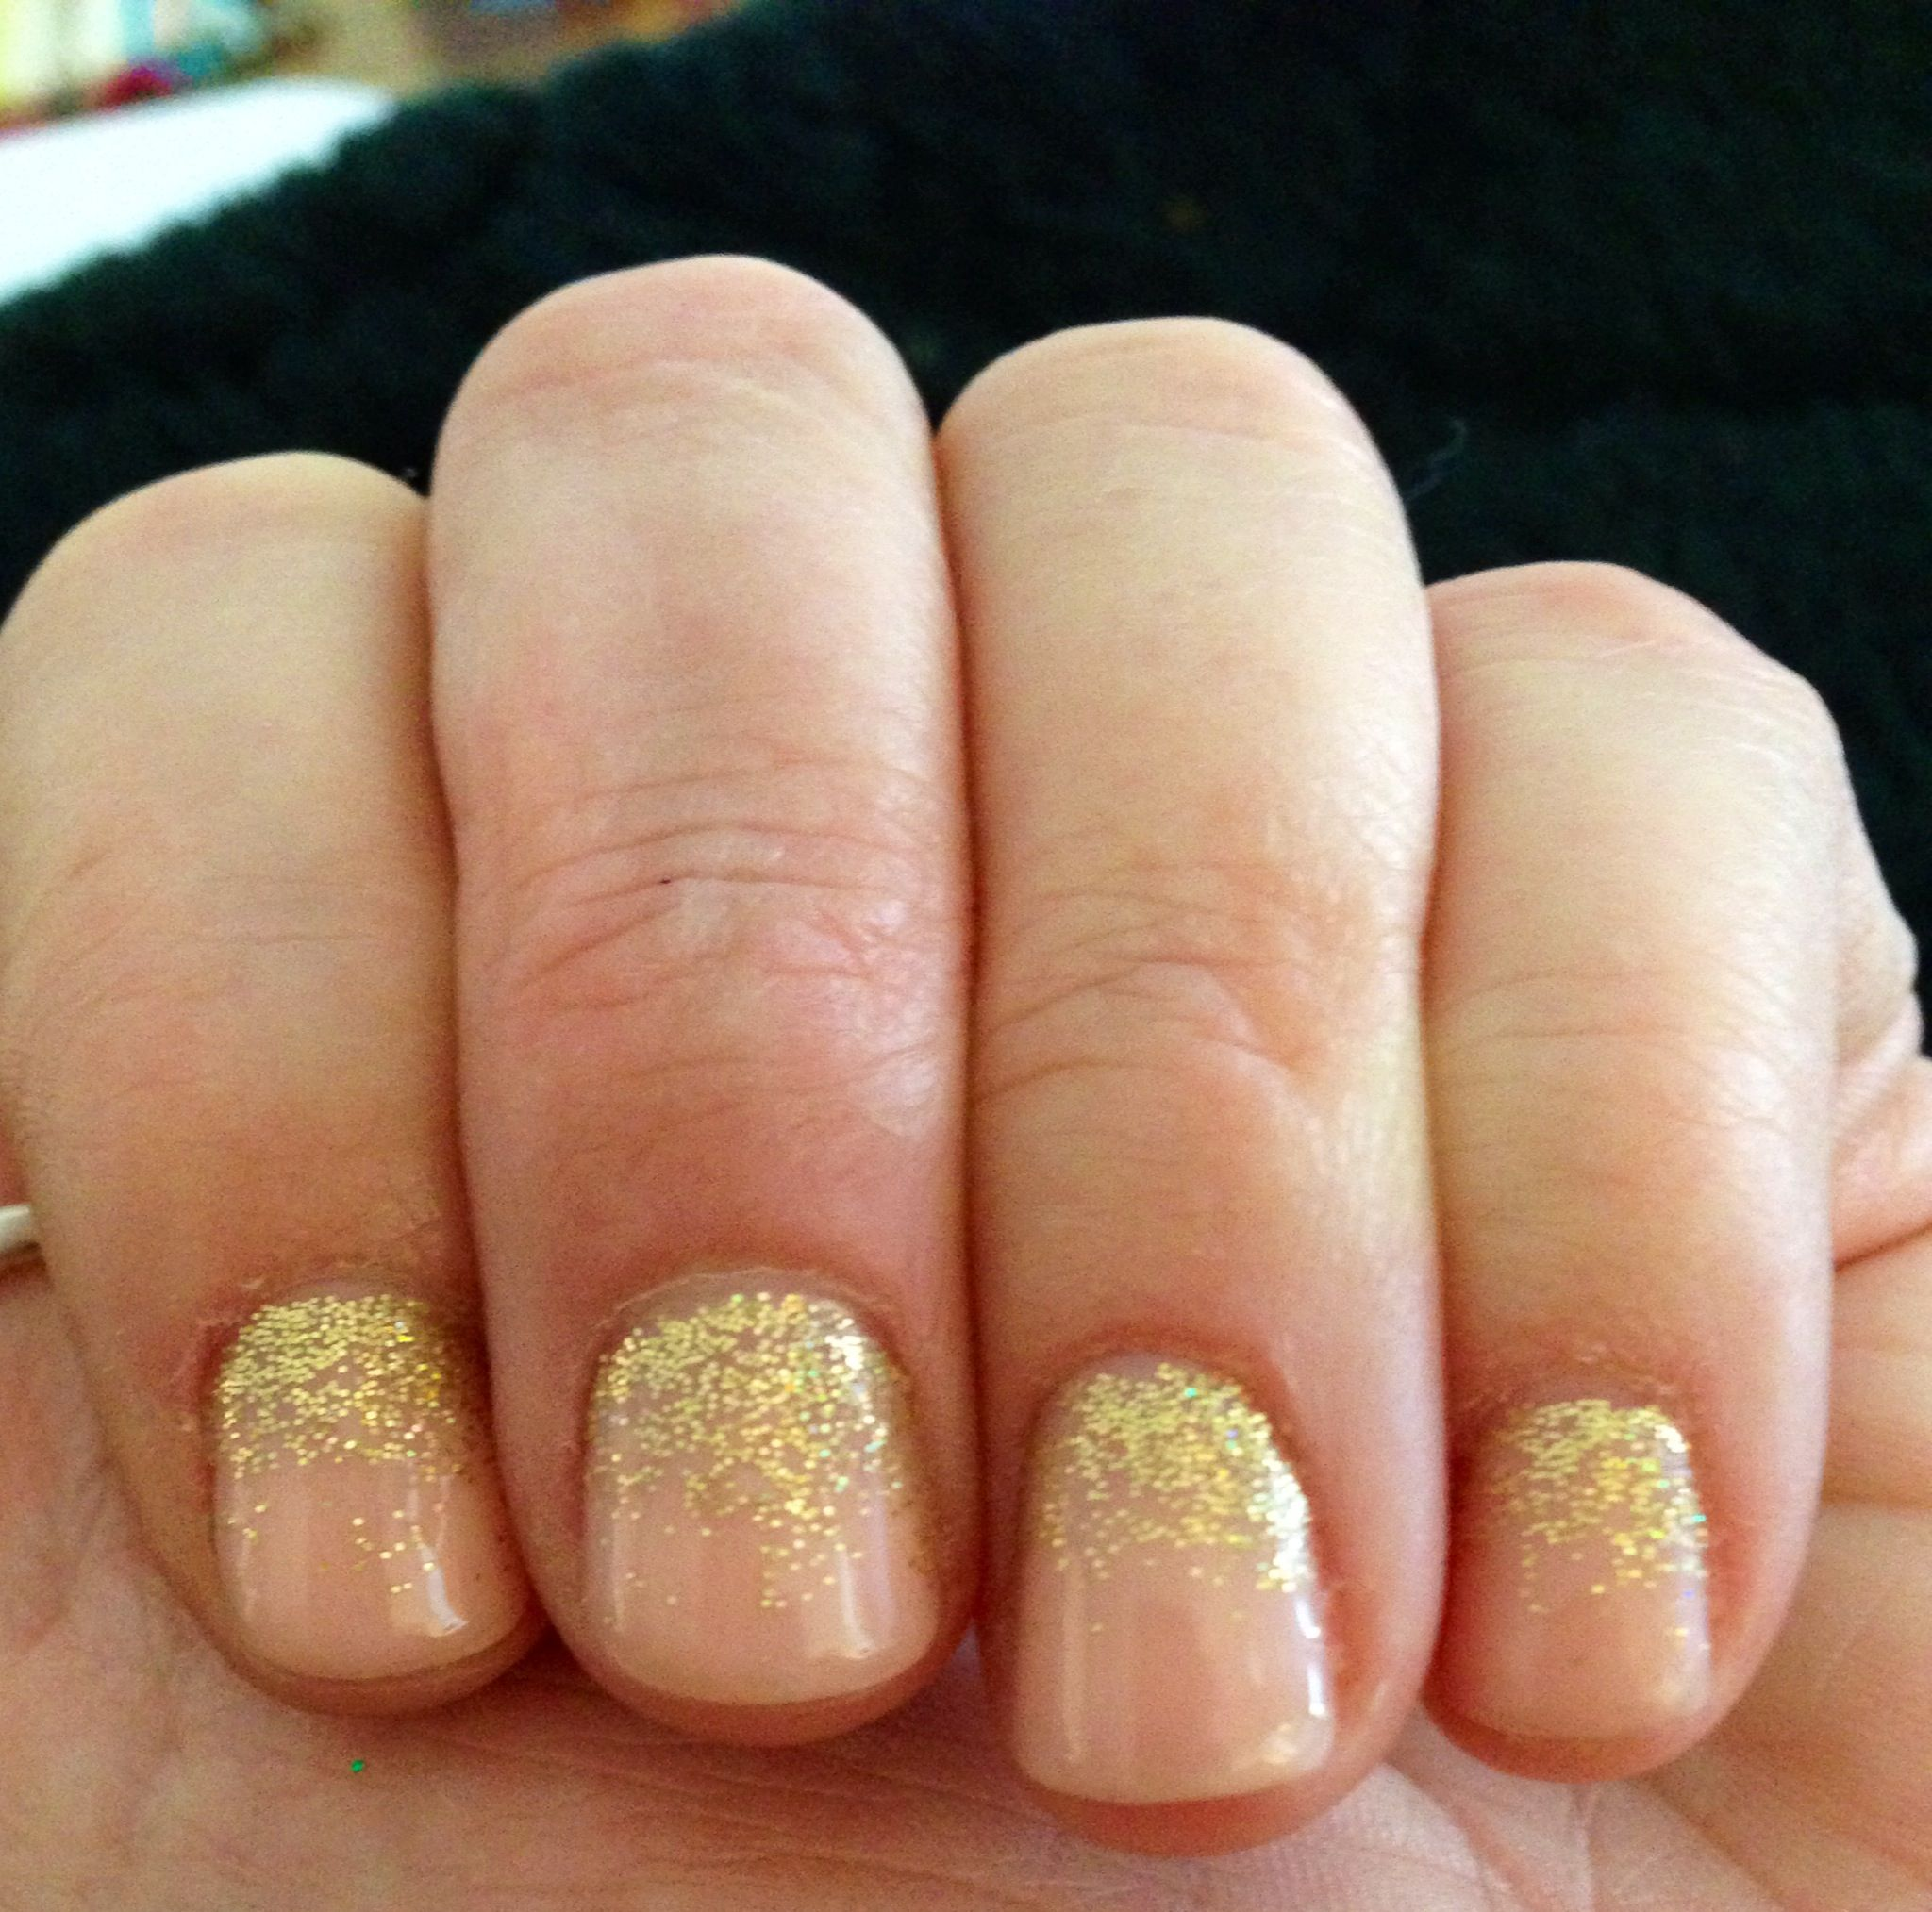 OPI gel Bubble Bath and gold glitter